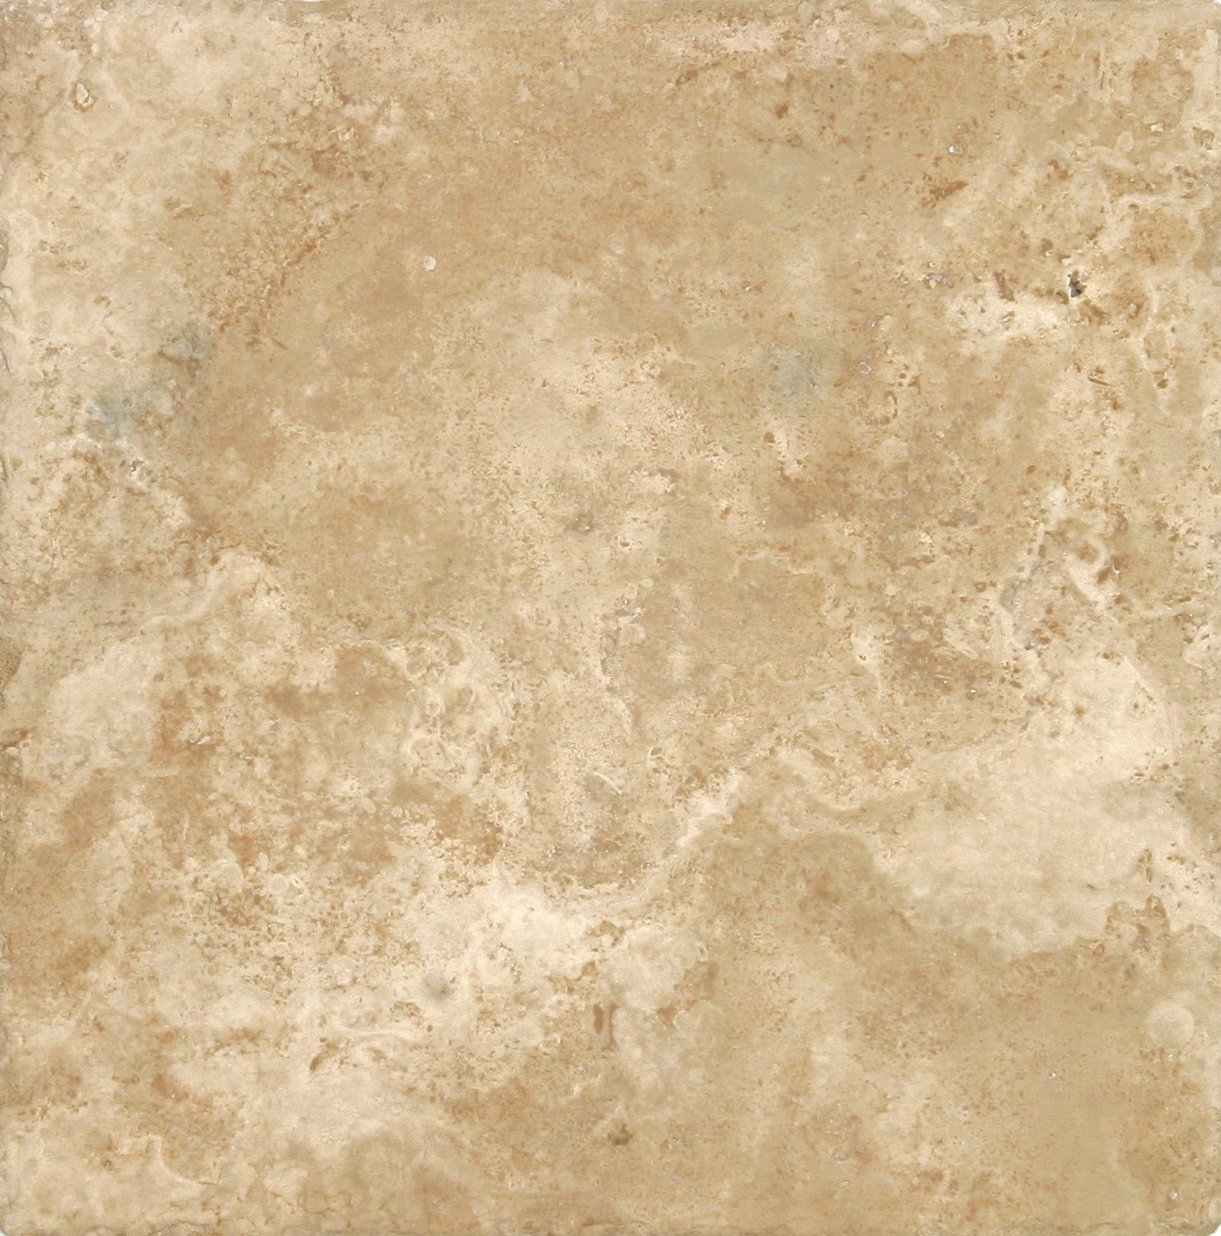 Limestone Or Travertine Tile : Know about italian marble types for home décor my decorative